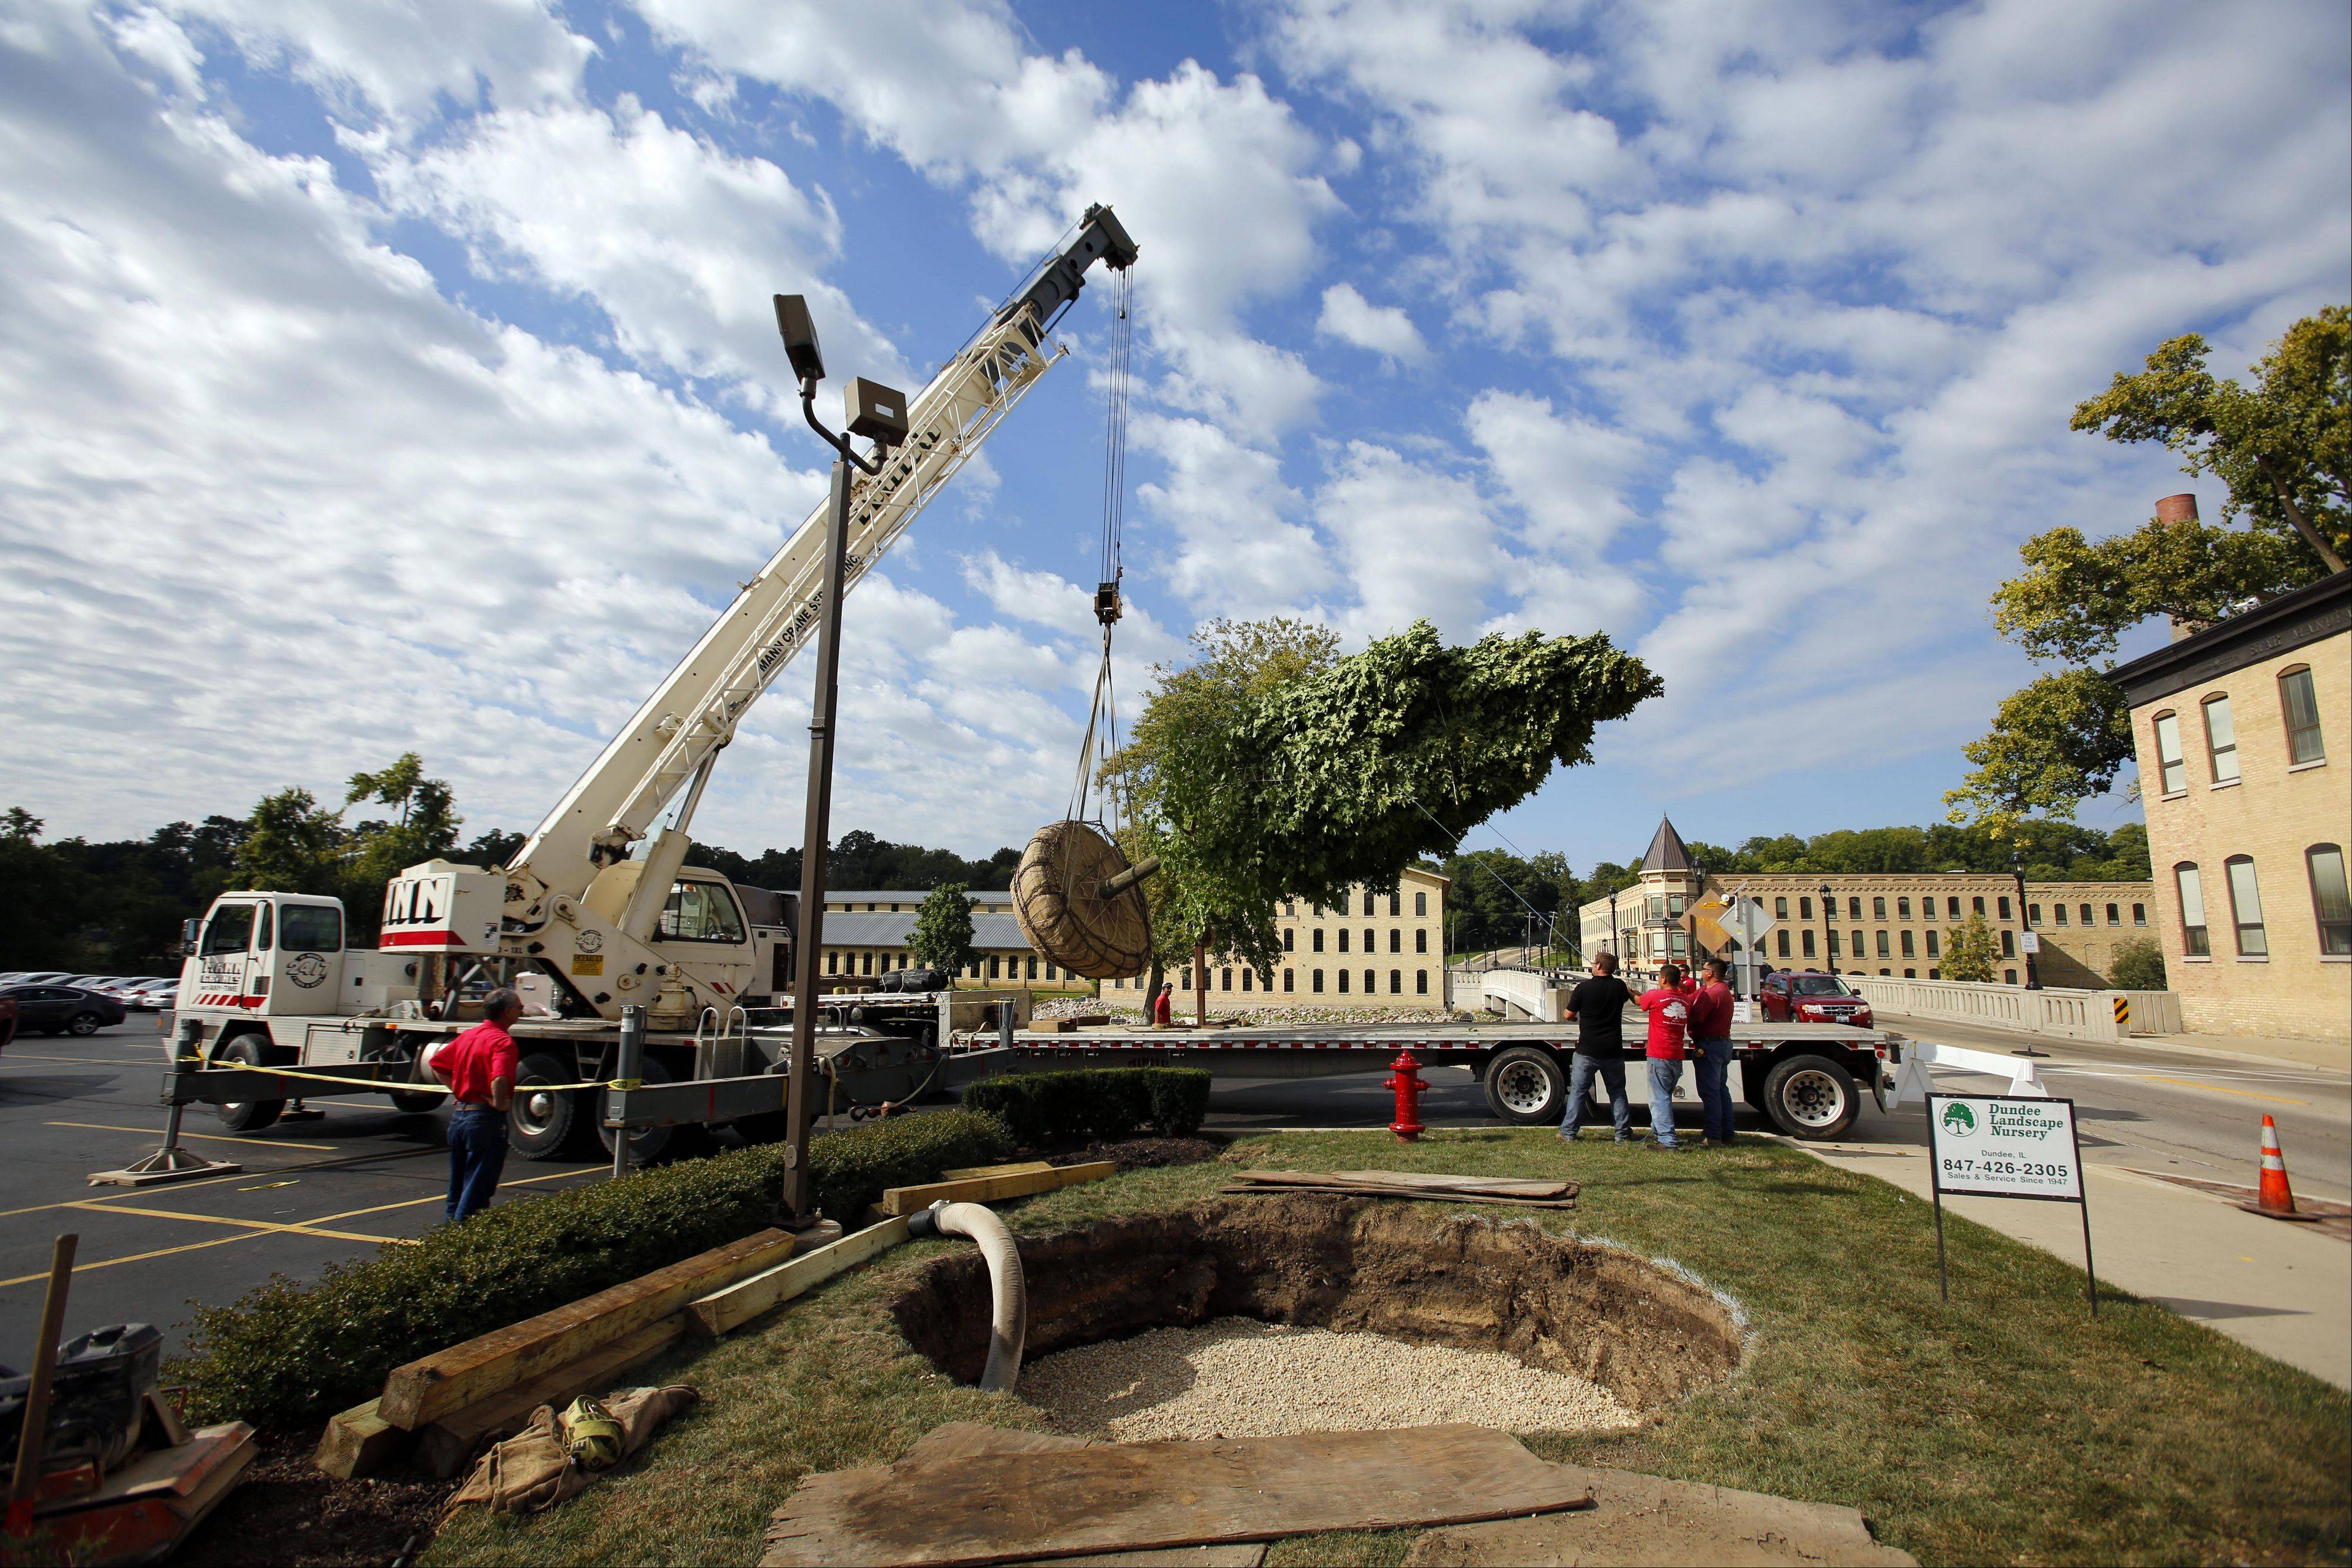 A crew from Dundee Landscape Nursery & Garden Center plants a large sugar maple tree Thursday at Otto Engineering in Carpentersville. The tree weighed 20,000 pounds and was lifted by crane and deposited in its final resting spot.